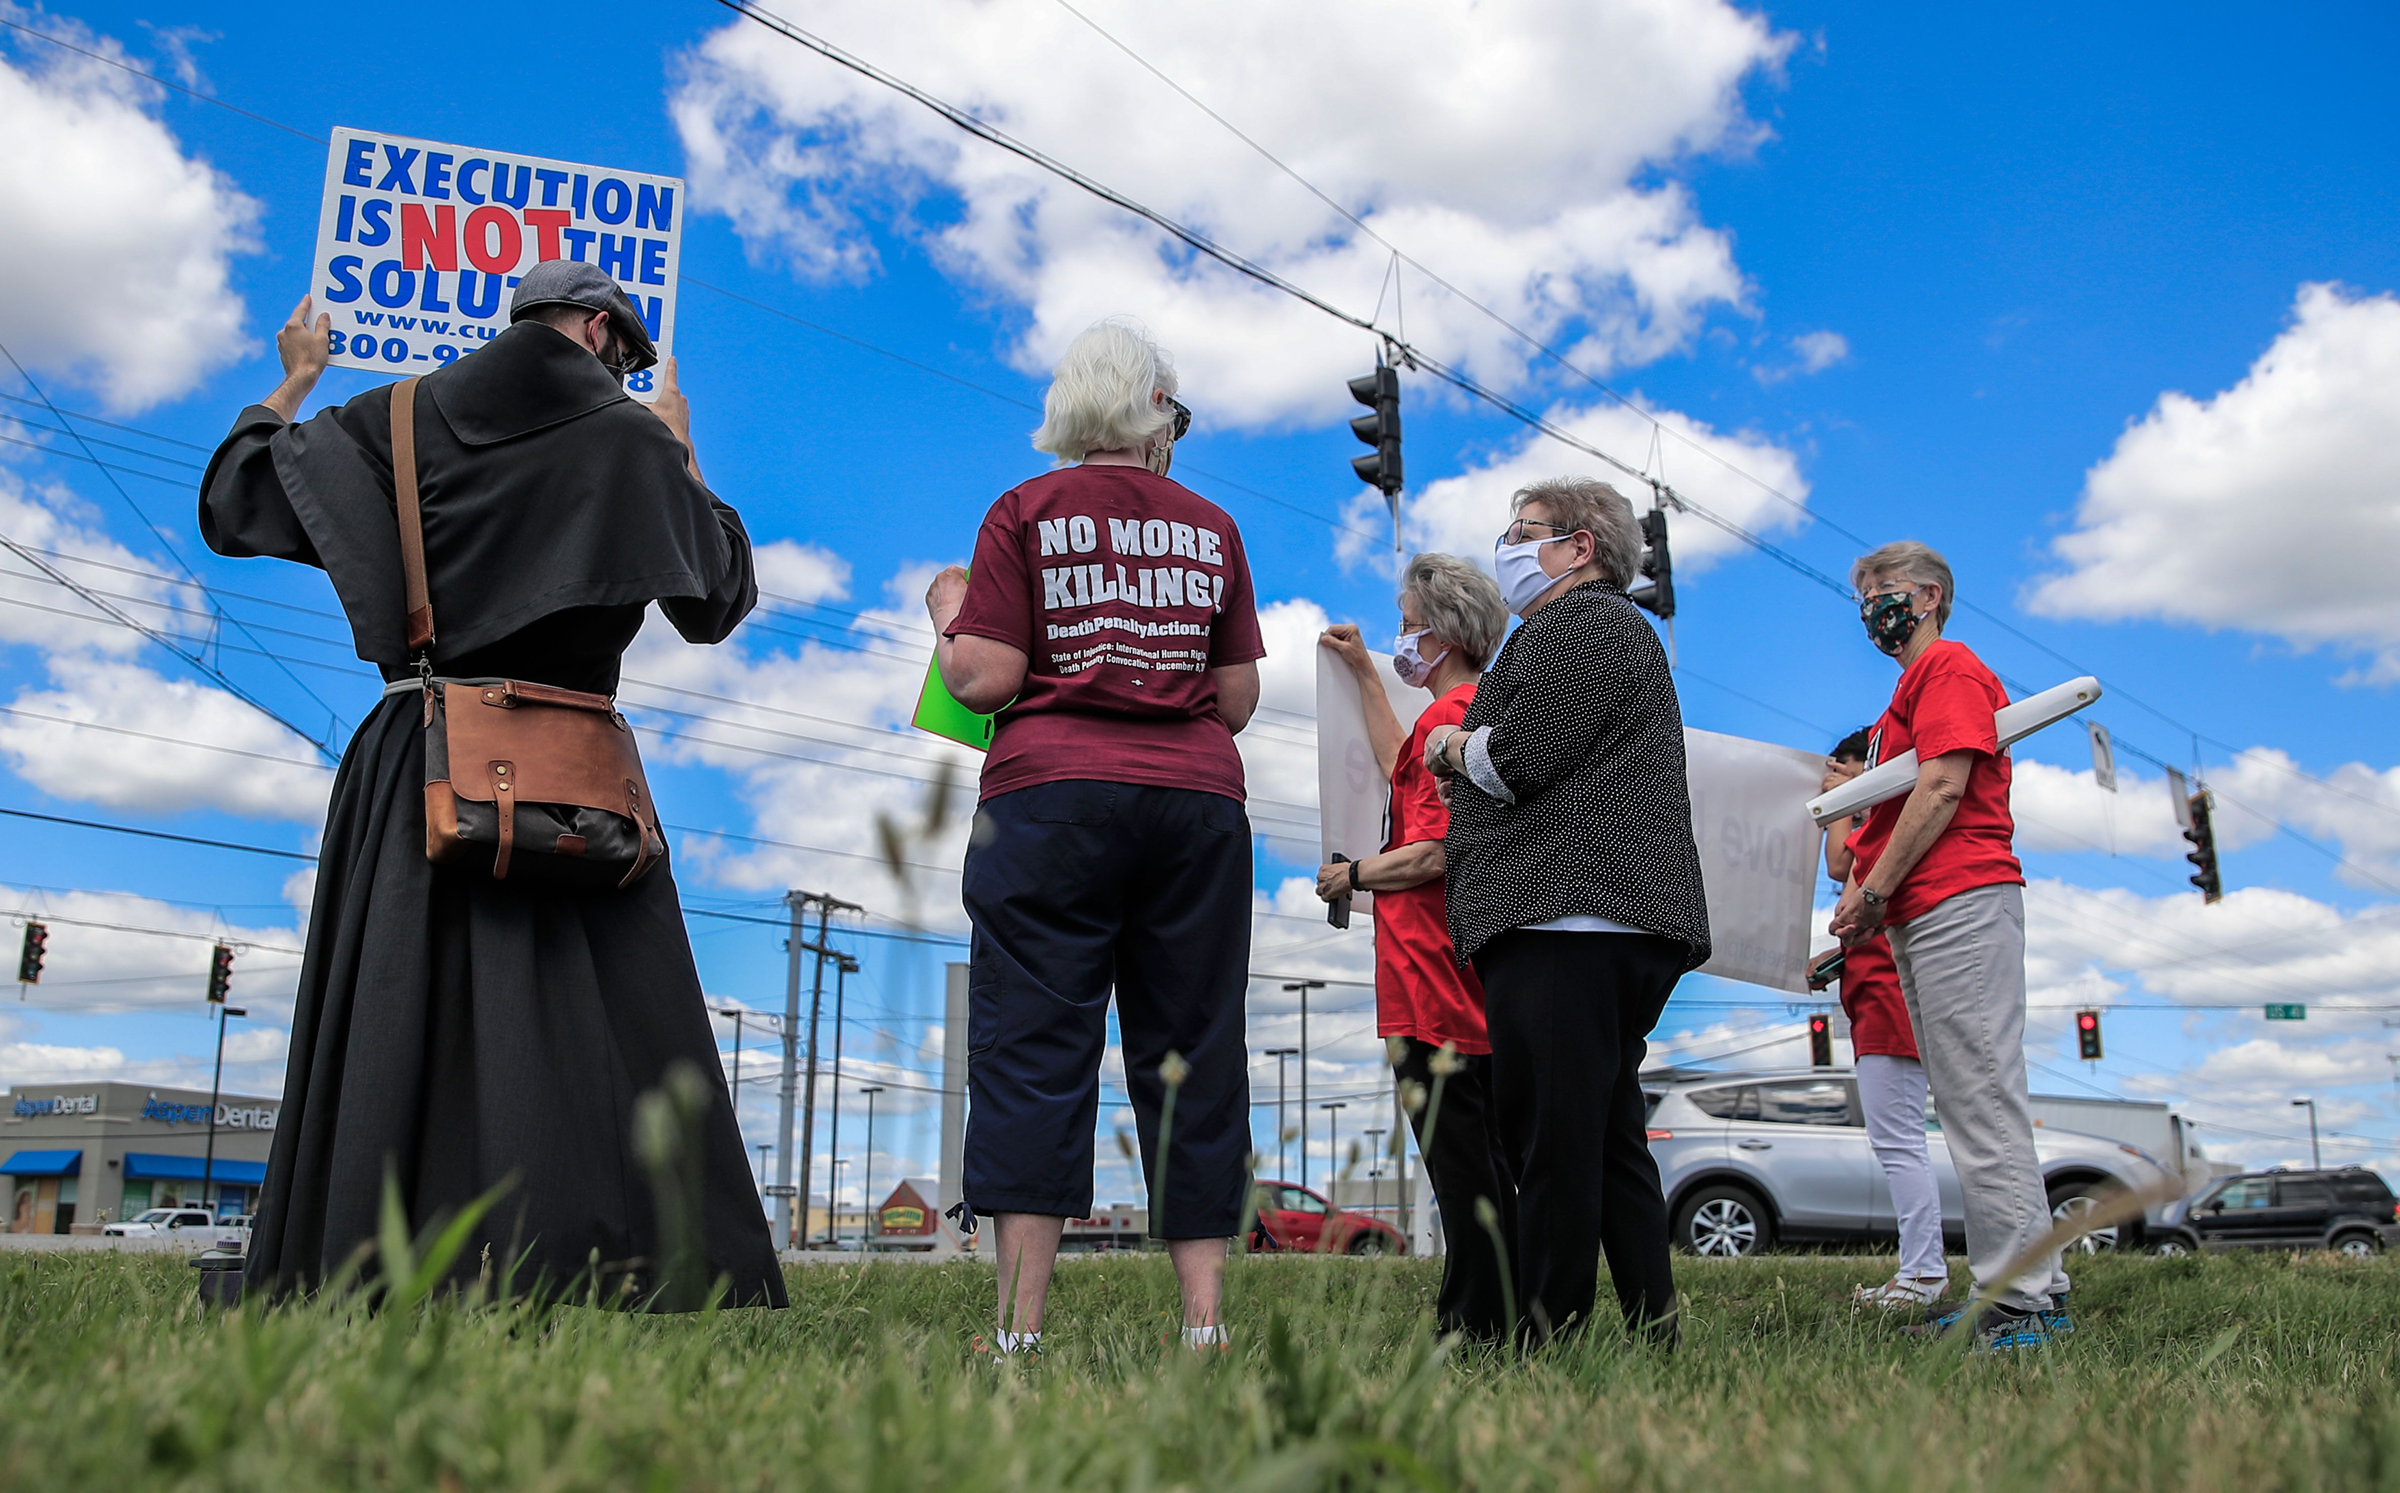 A protest in July against the resumption of federal executions near the U.S. penitentiary and execution chamber in Terre Haute, Ind.